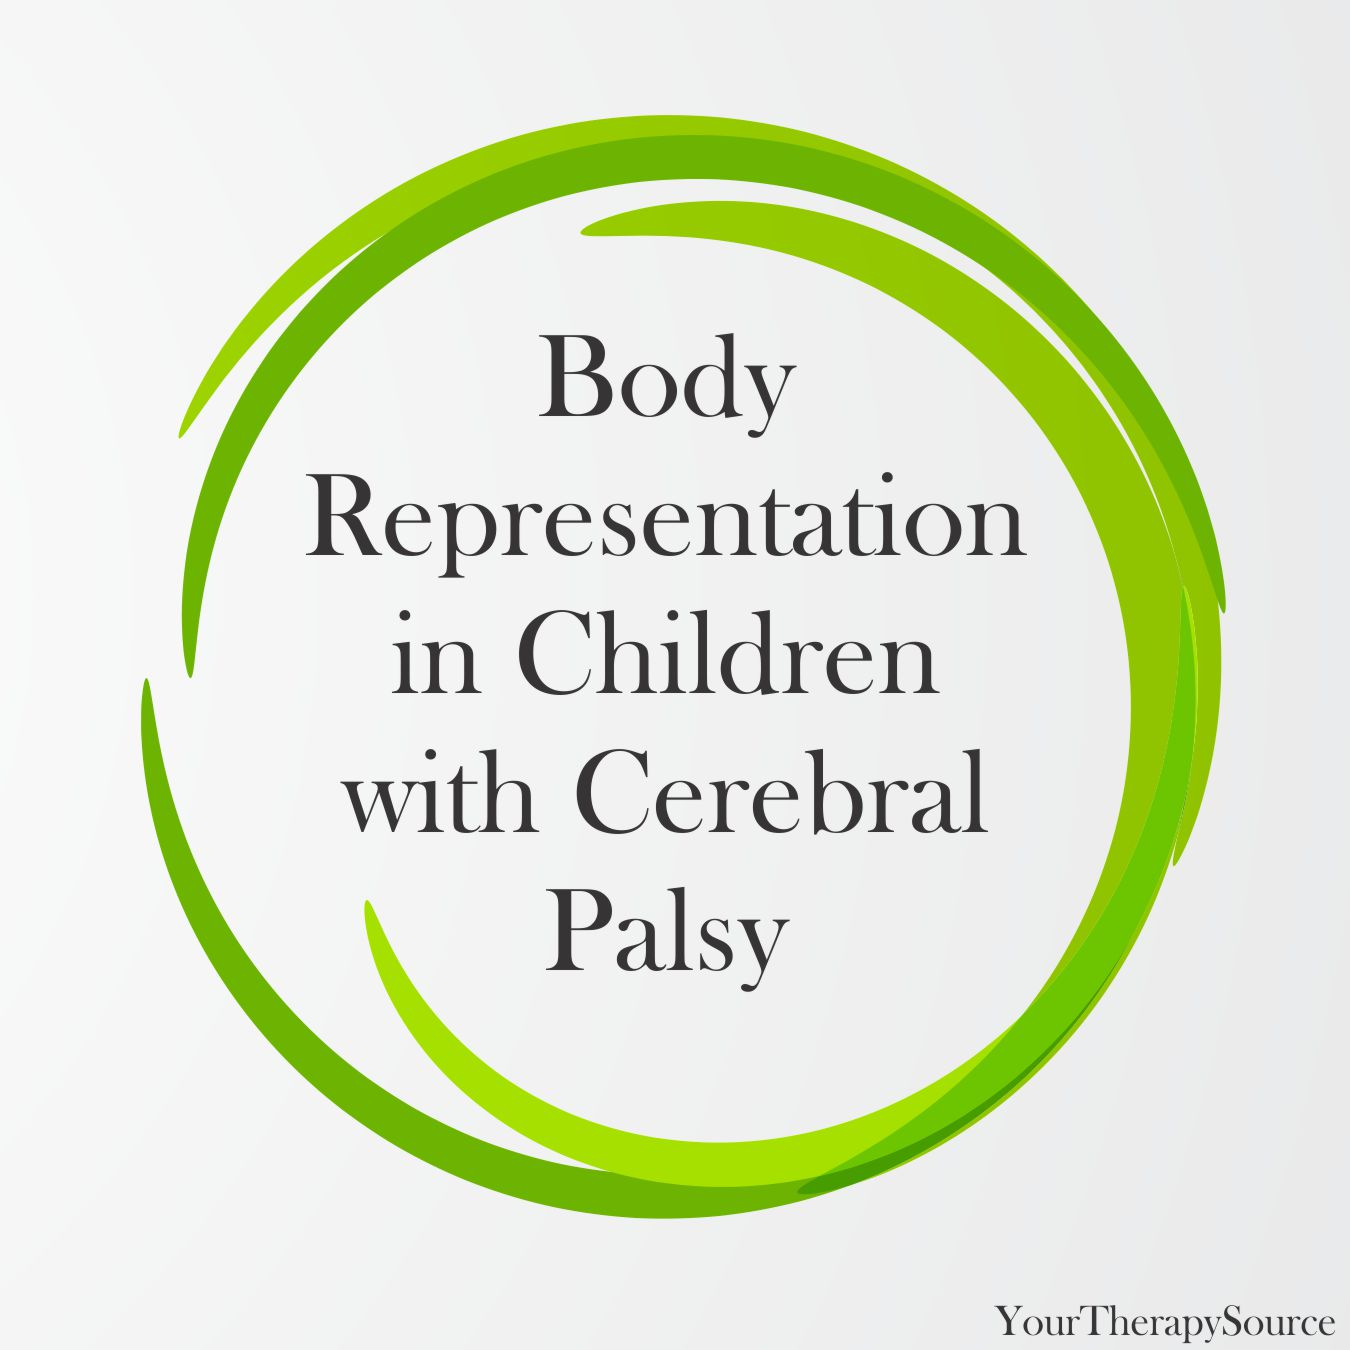 Recent research was published in Brain Sciences about body representation in children with cerebral palsy. The researchers explored Body Semantics, Body Structural Representation and Body Schema 33 children with cerebral palsy compared to 103 typically developing children.